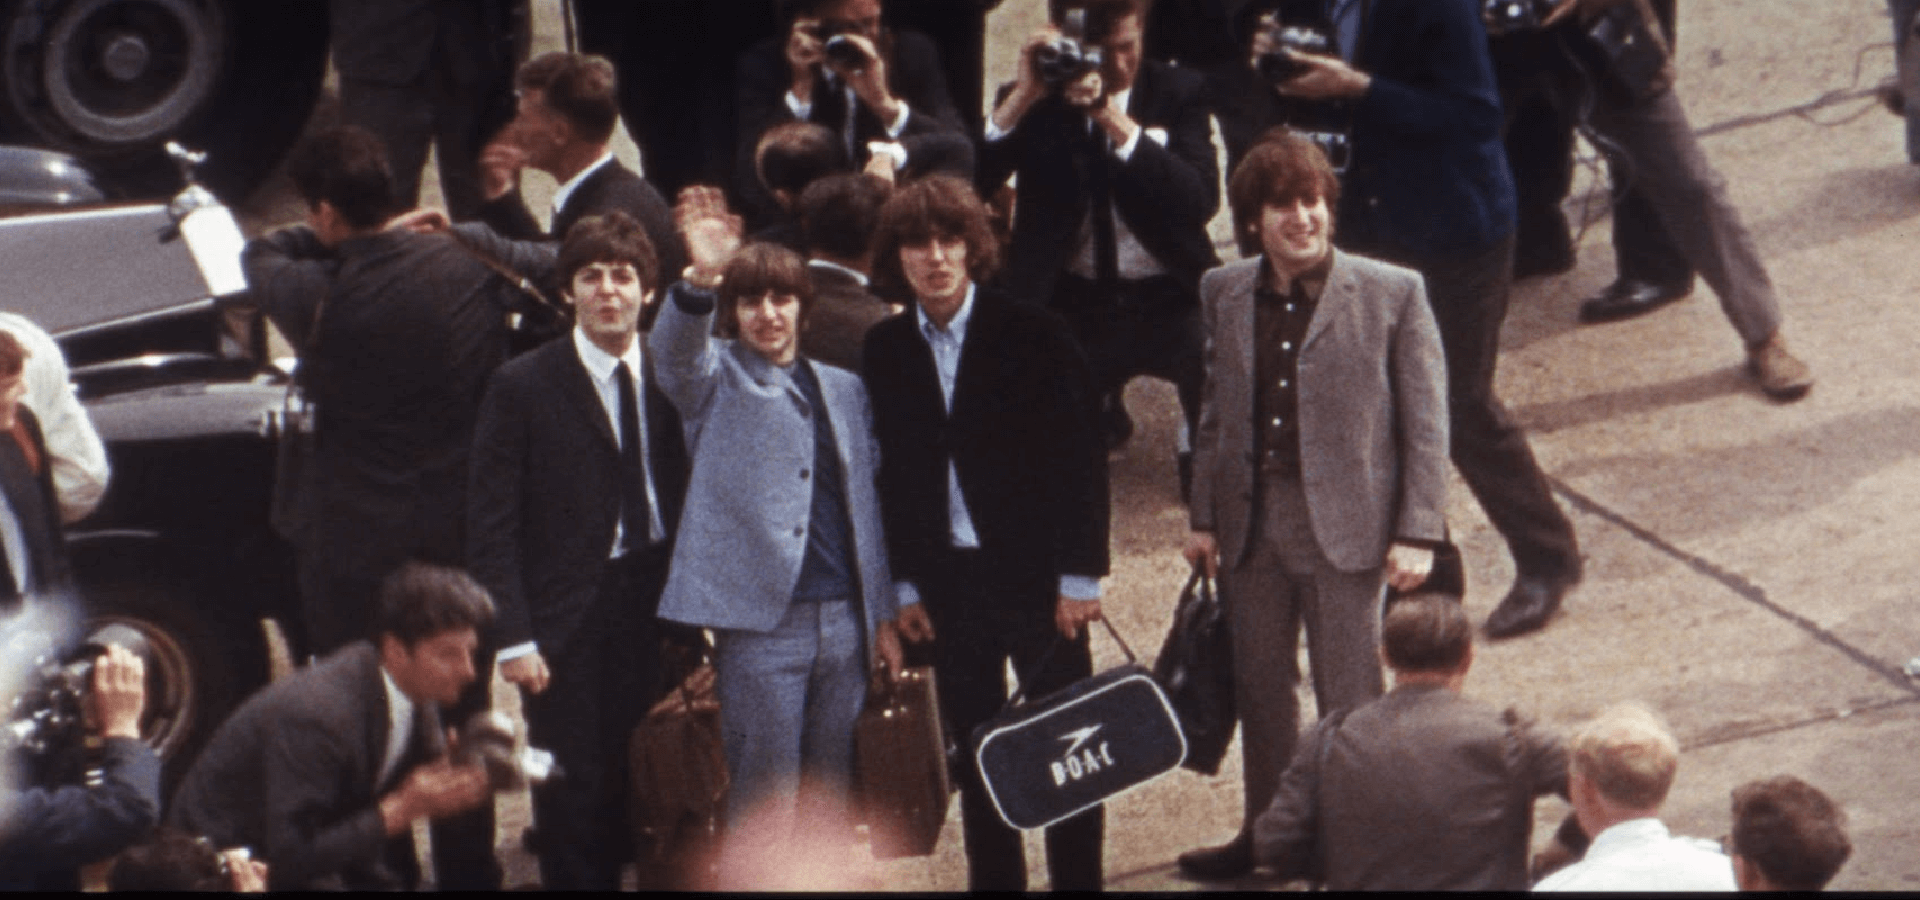 The People's Beatles: a worldwide photography project